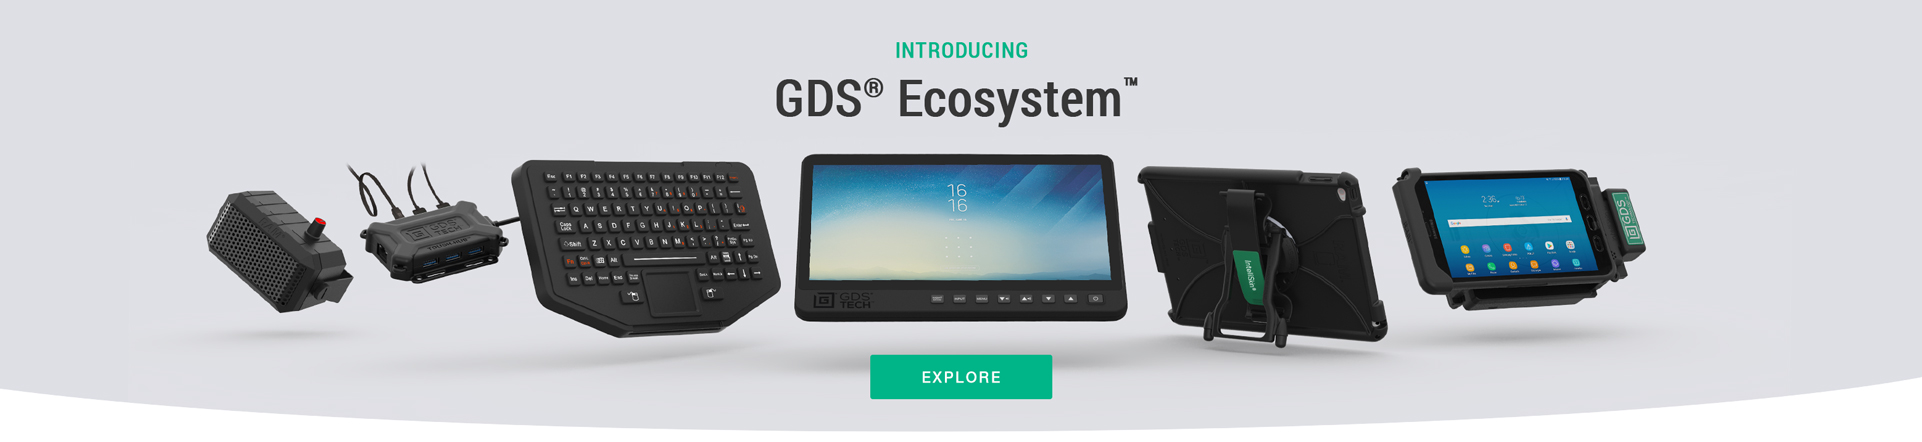 Introducing GDS® Ecosystem™